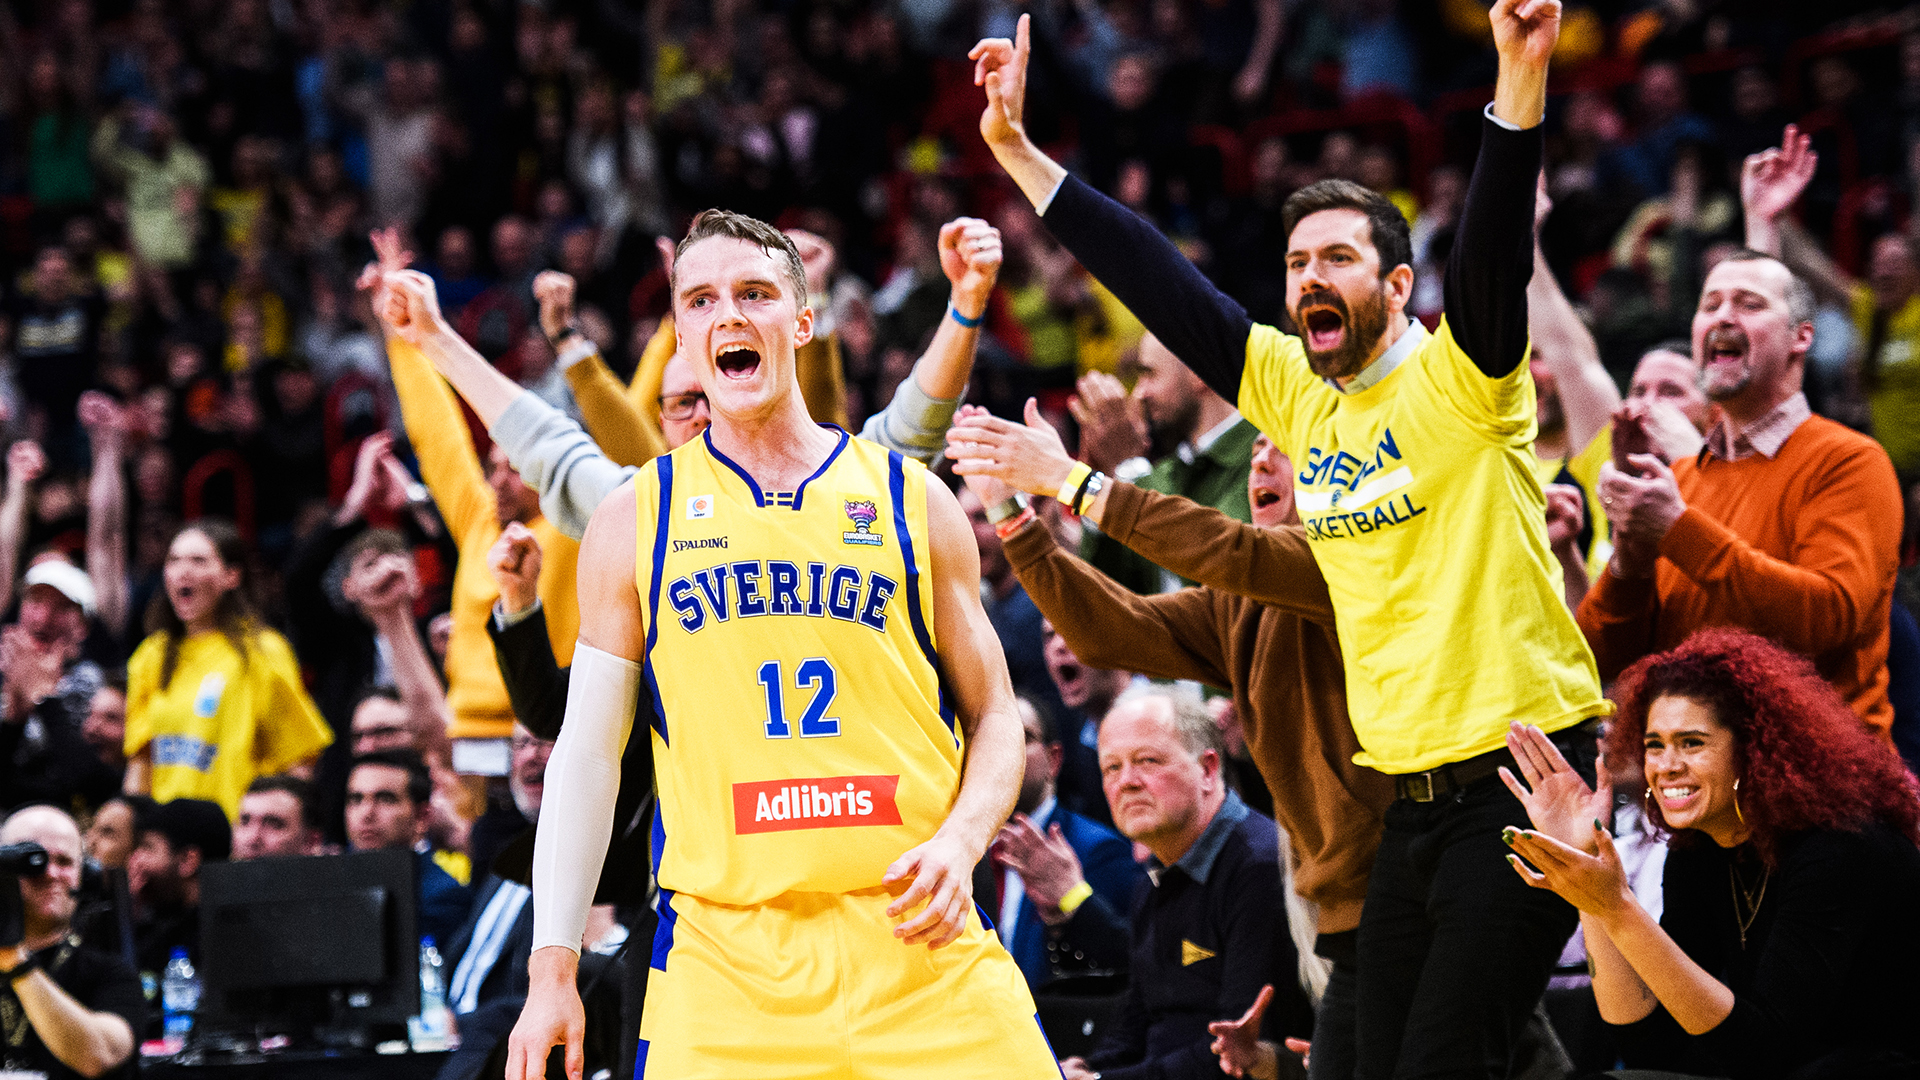 Sweden Basketball